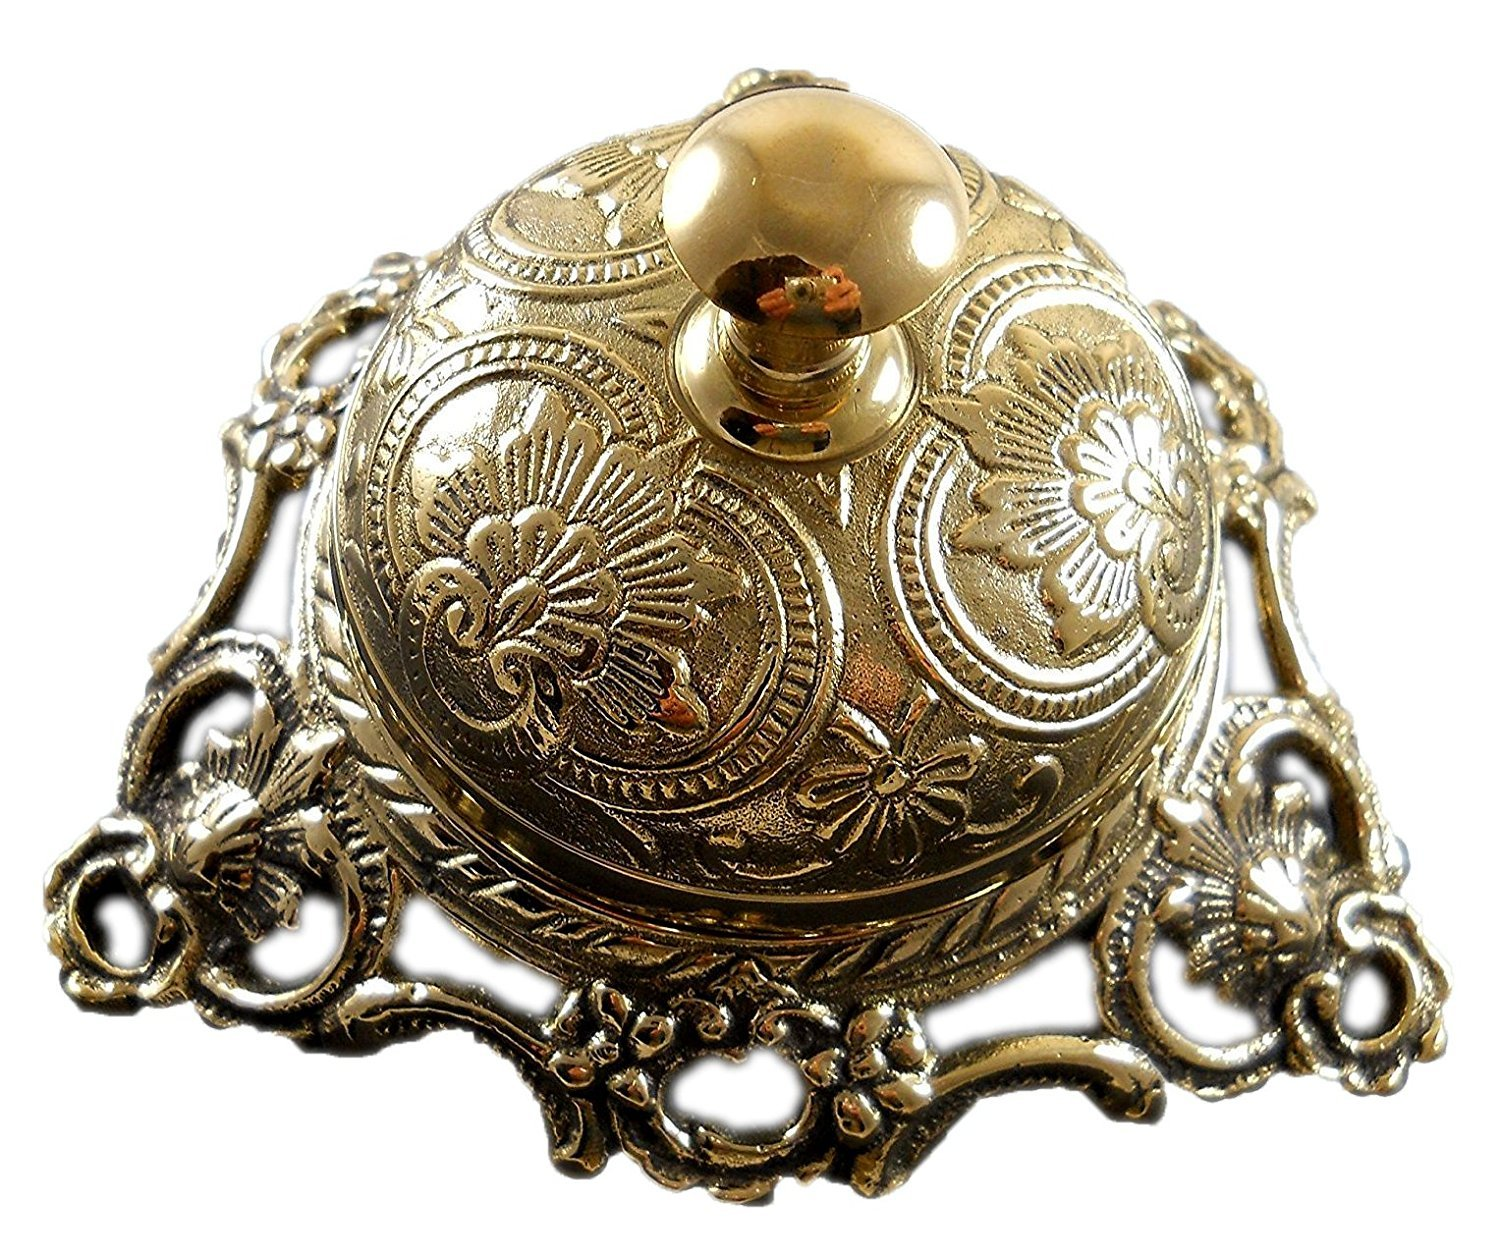 PARIJAT HANDICRAFT Handcrafted Service Desk Bell Ornate Solid Brass Hotel Counter Bell Desk Bell Service Bell for Hotels, Schools, Restaurants, Reception Areas, Hospitals, Warehouses